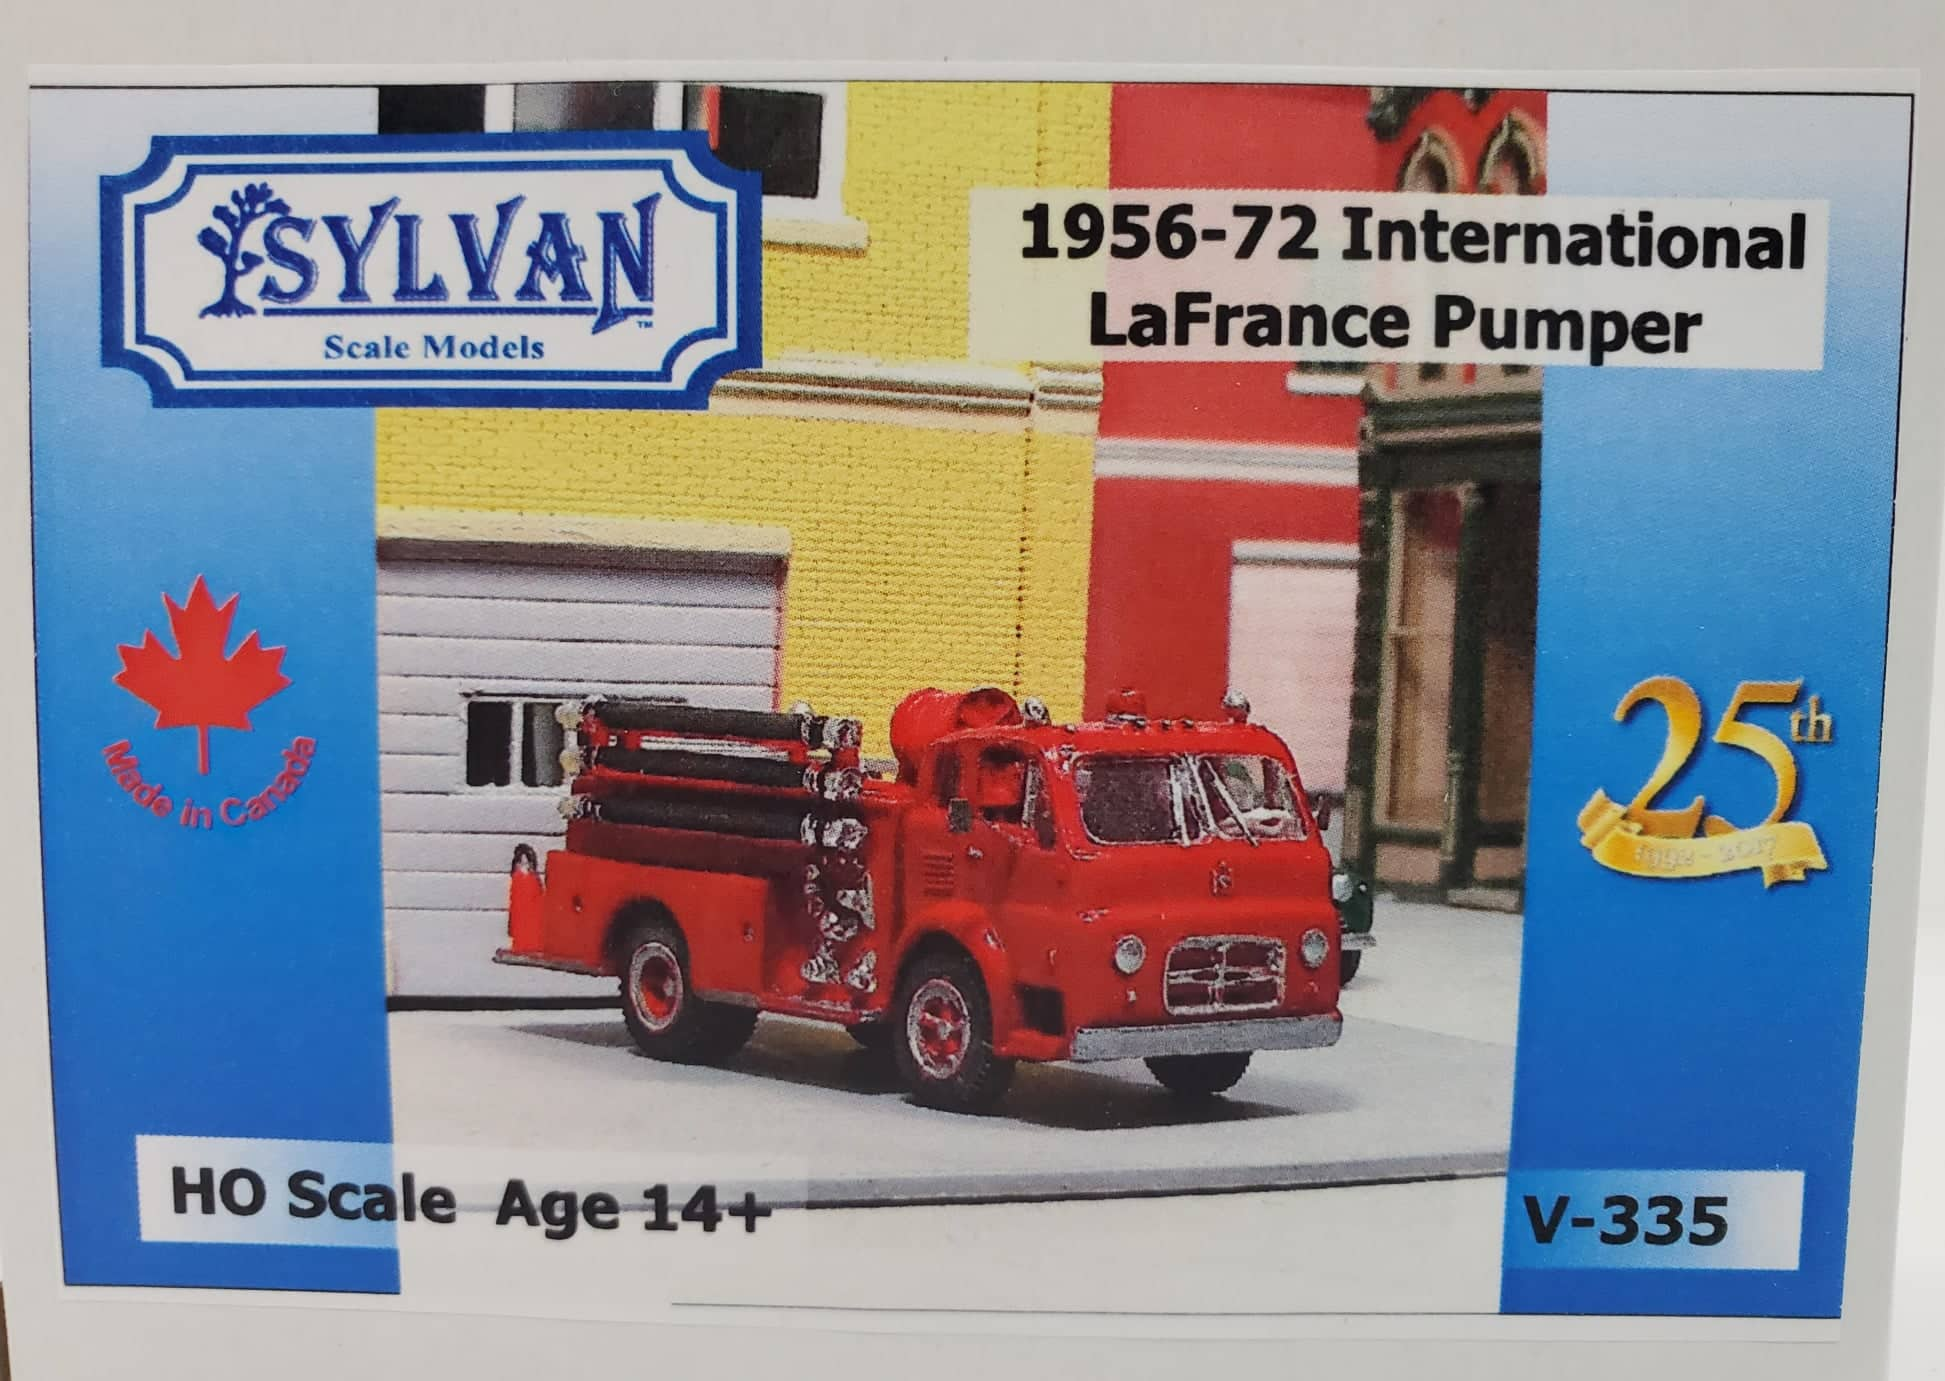 Sylvan Scale Models 335 HO Scale - 1956-72 IHC-190/LaFrance Pumper - Unpainted and Resin Cast Kit